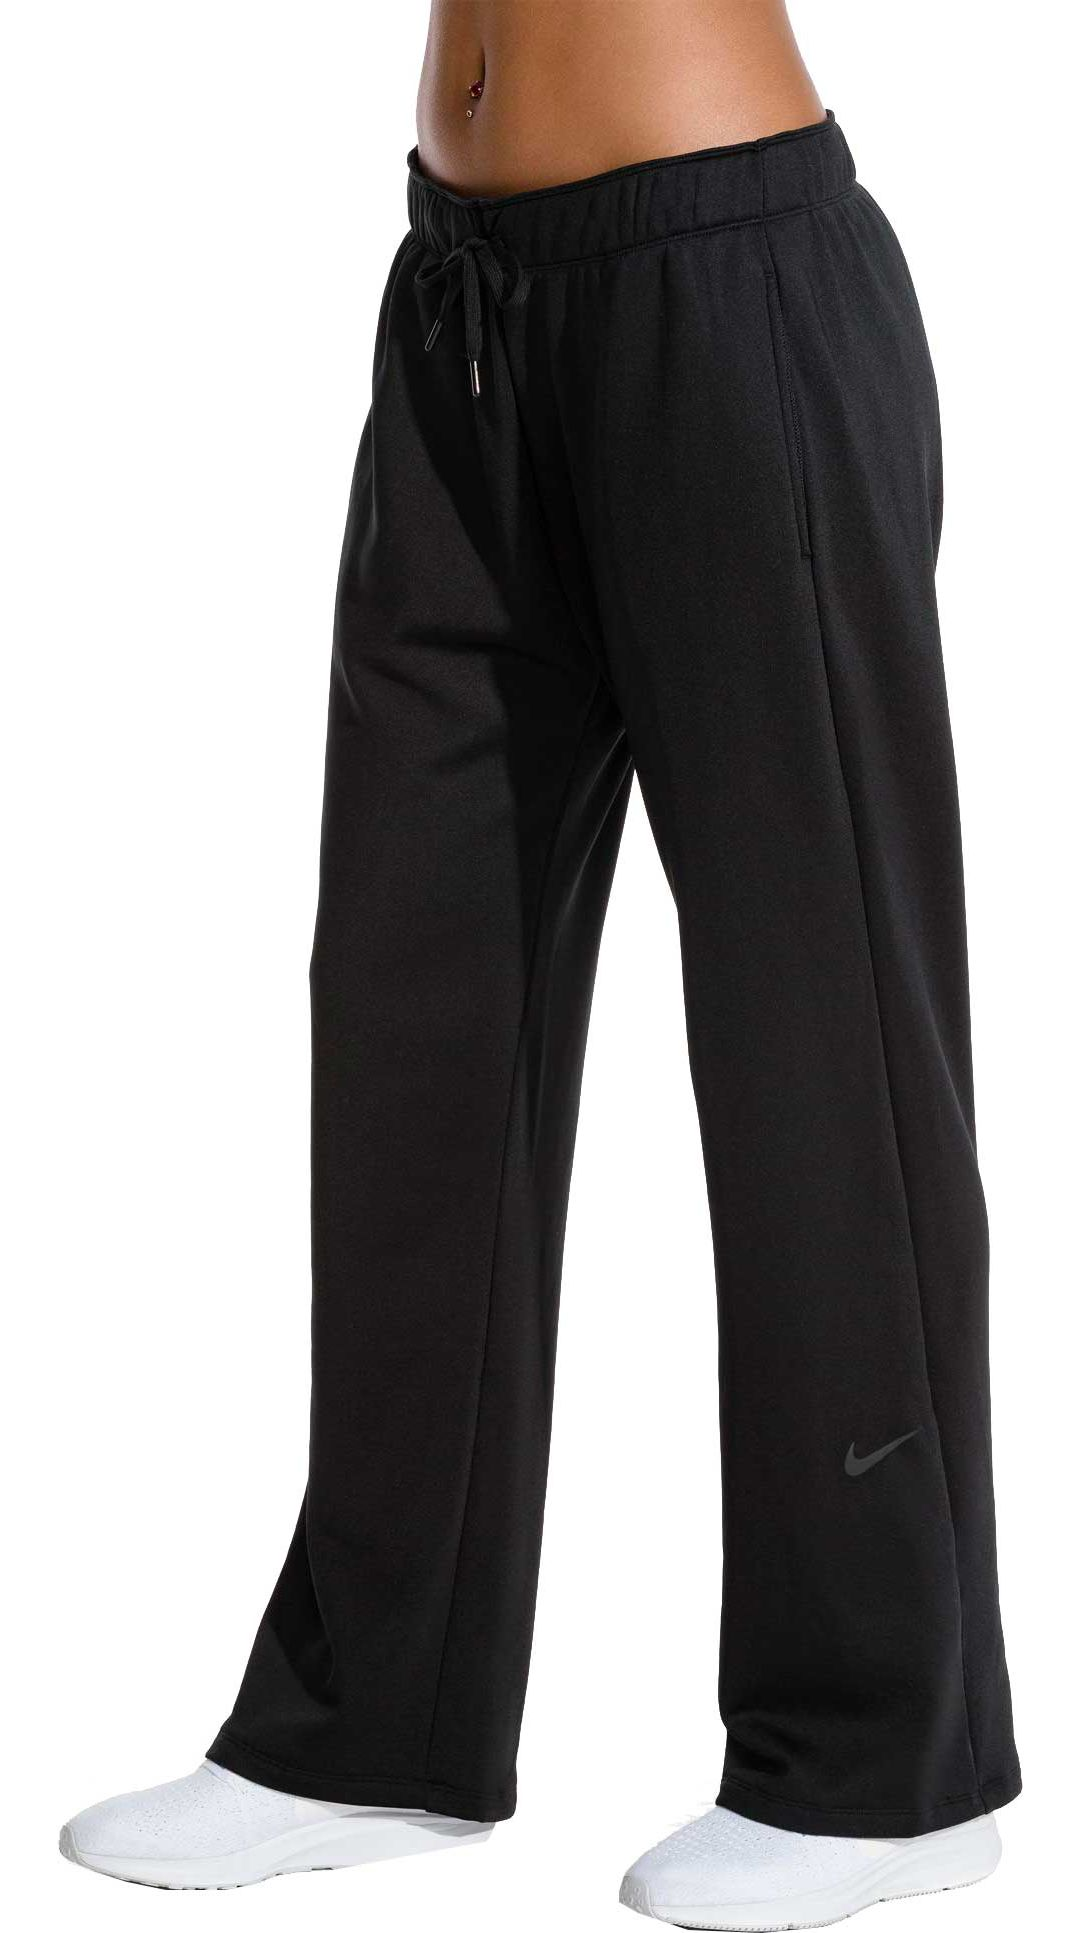 quality products in stock cheap for discount Nike Women's Therma Fleece Training Pants